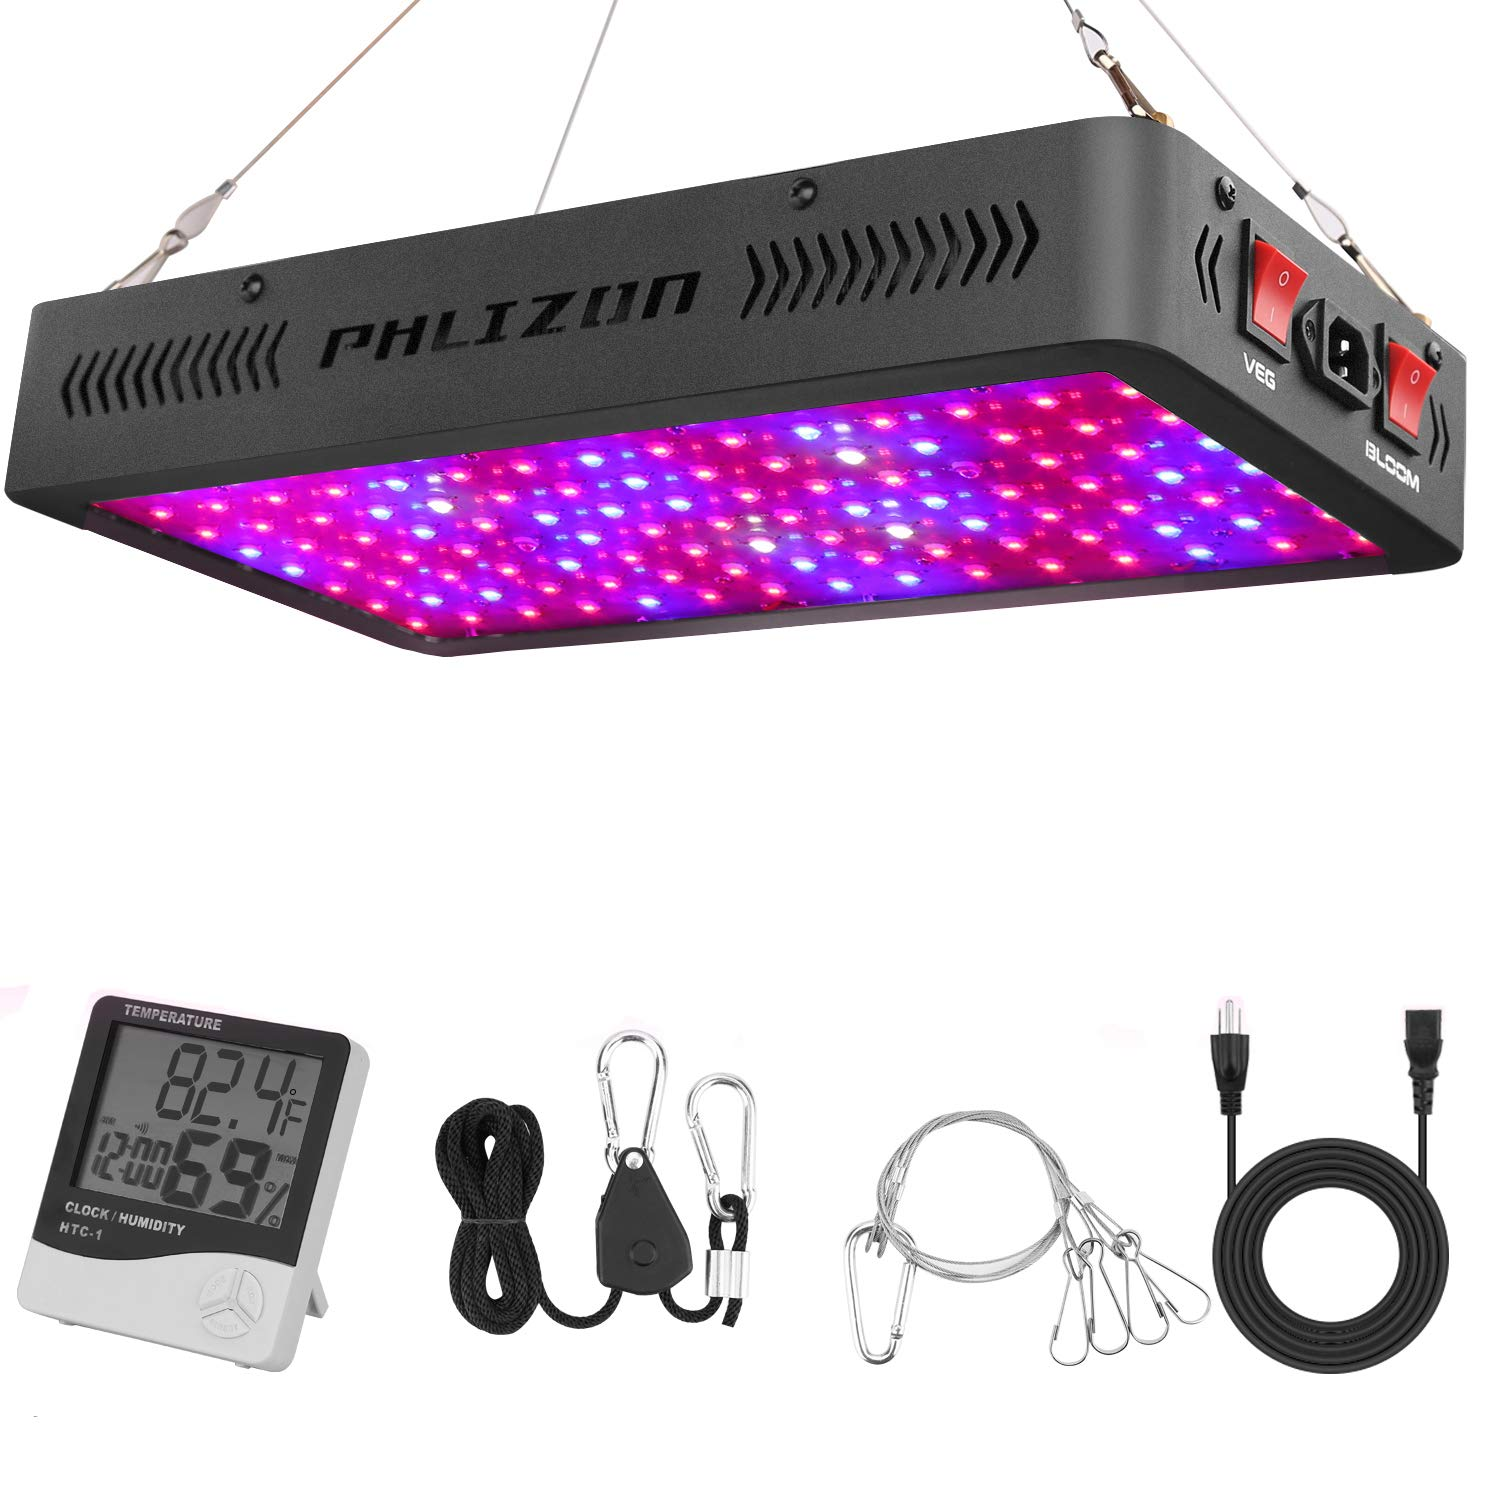 Phlizon Newest 1200W LED Plant Grow Light,with Thermometer Humidity Monitor,with Adjustable Rope,Full Spectrum Double Switch Plant Light for Indoor Plants Veg and Flower- 1200W(10W LEDs 120Pcs) by Phlizon